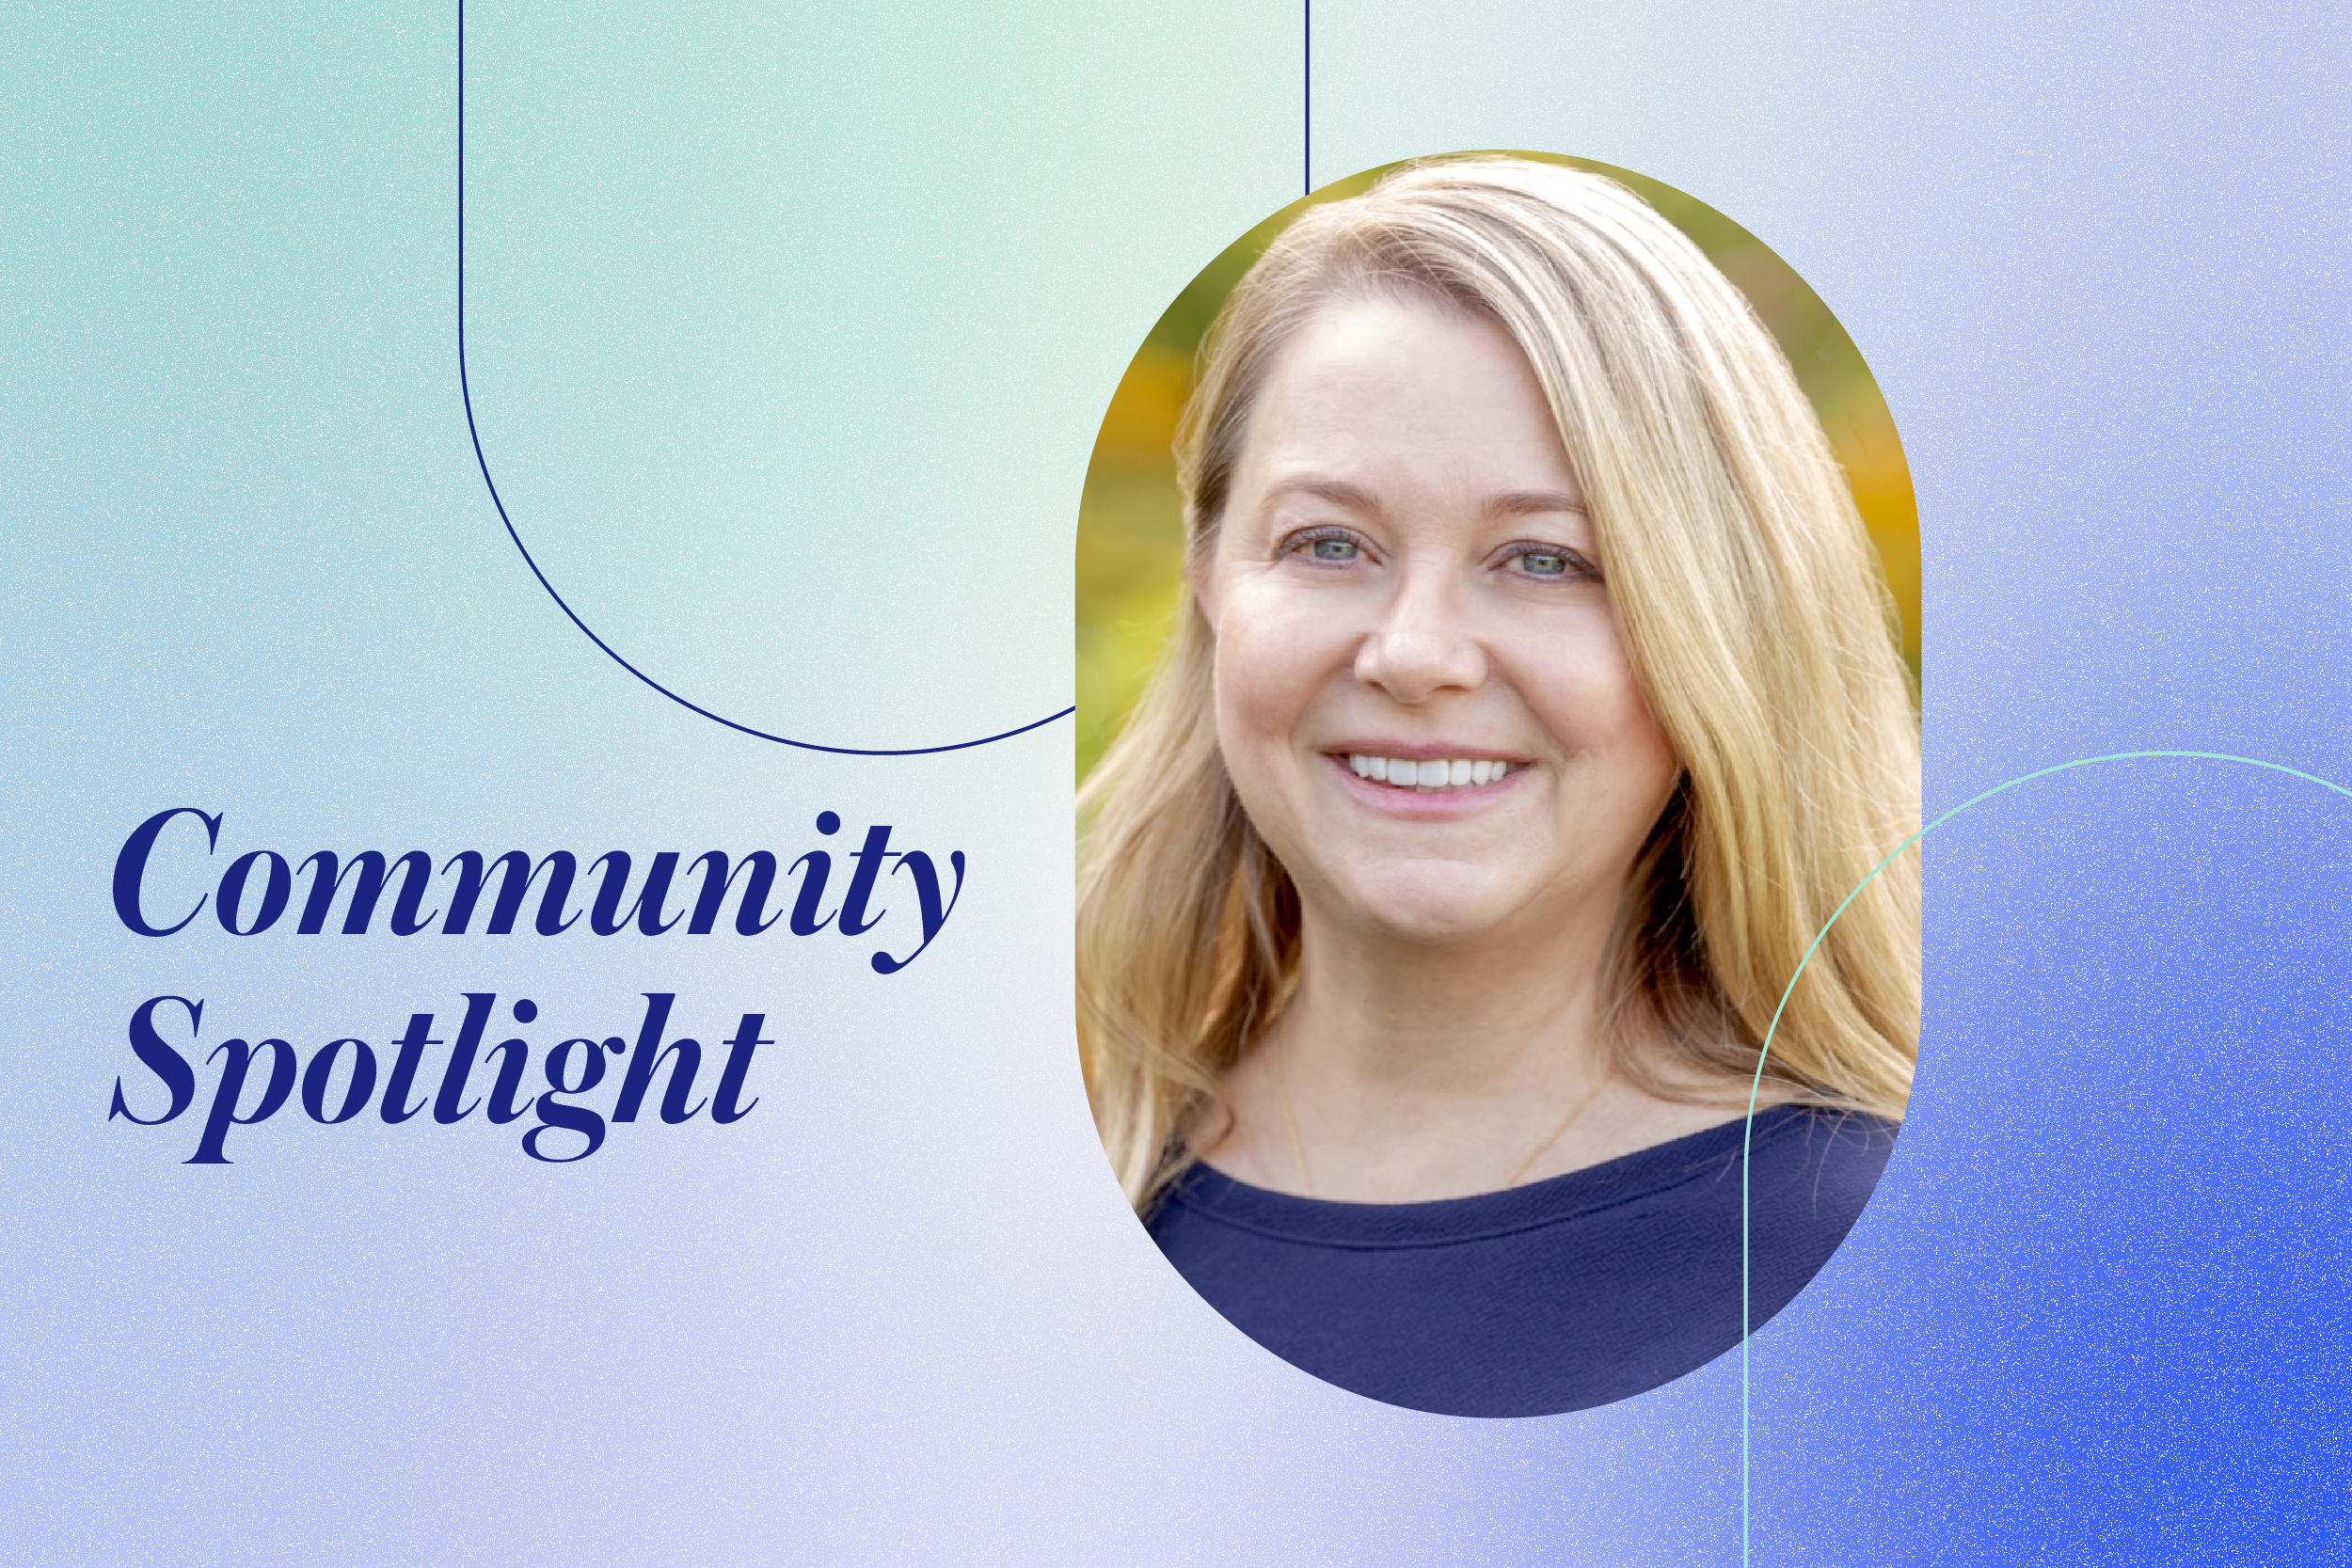 Community Spotlight: Jen Alford